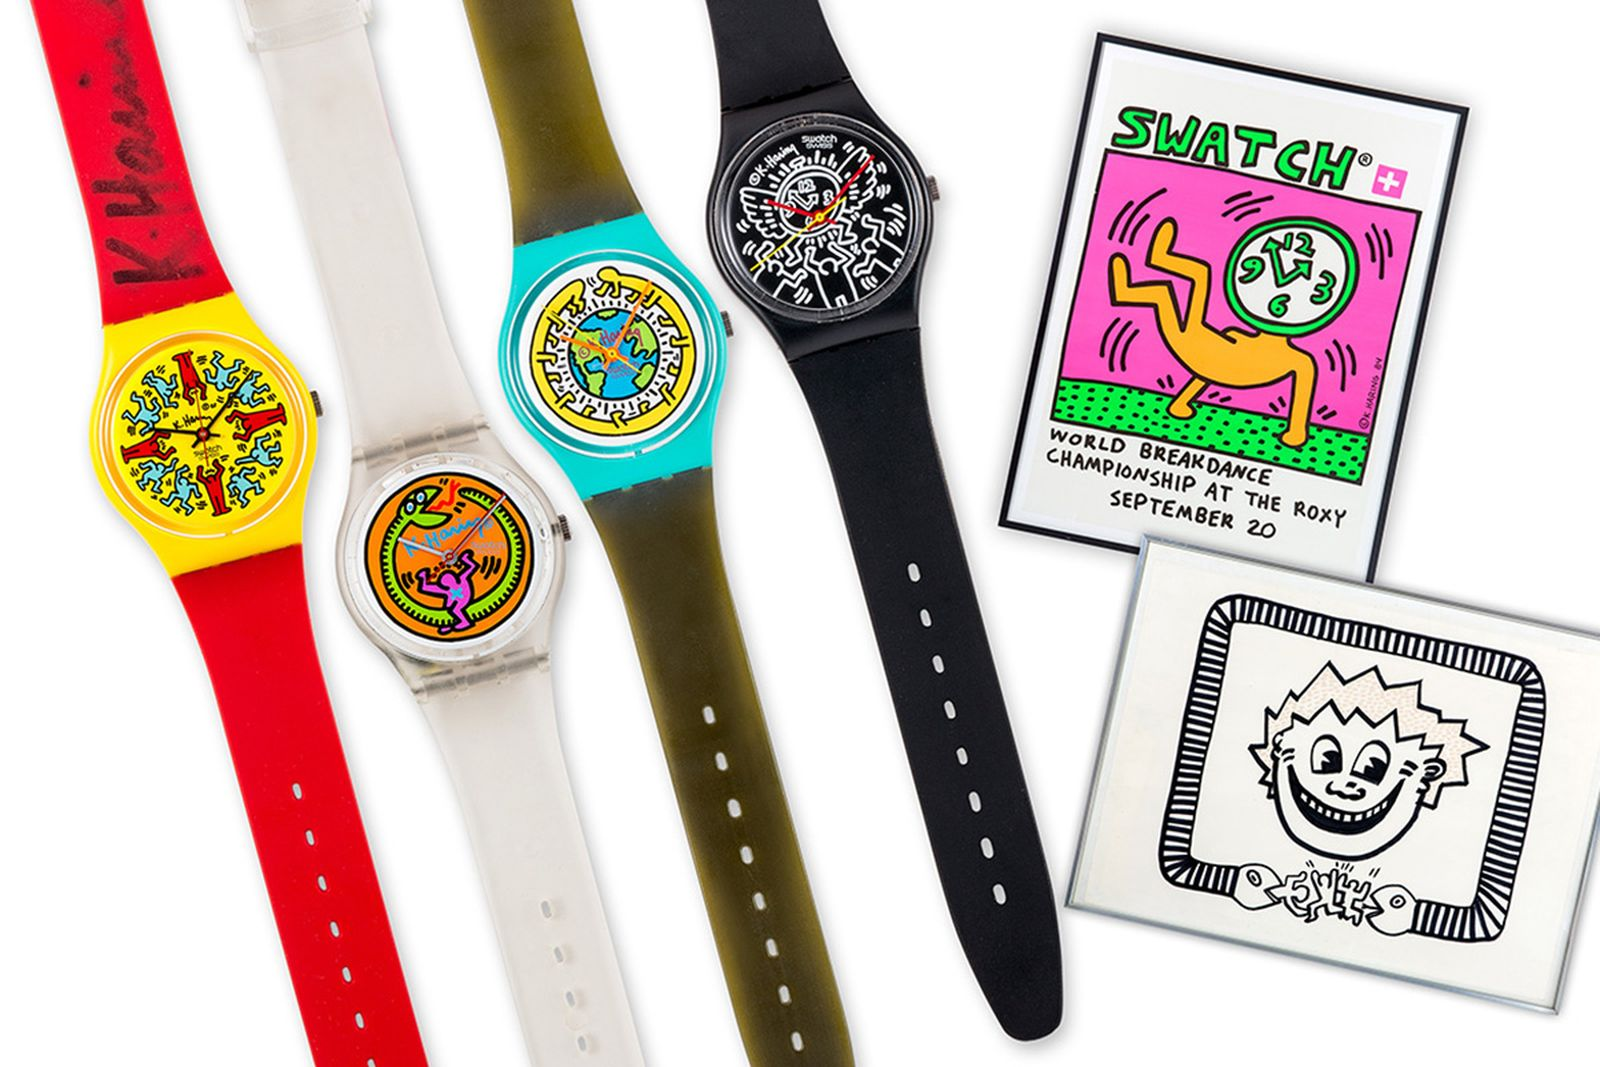 keith-haring-art-watches-01